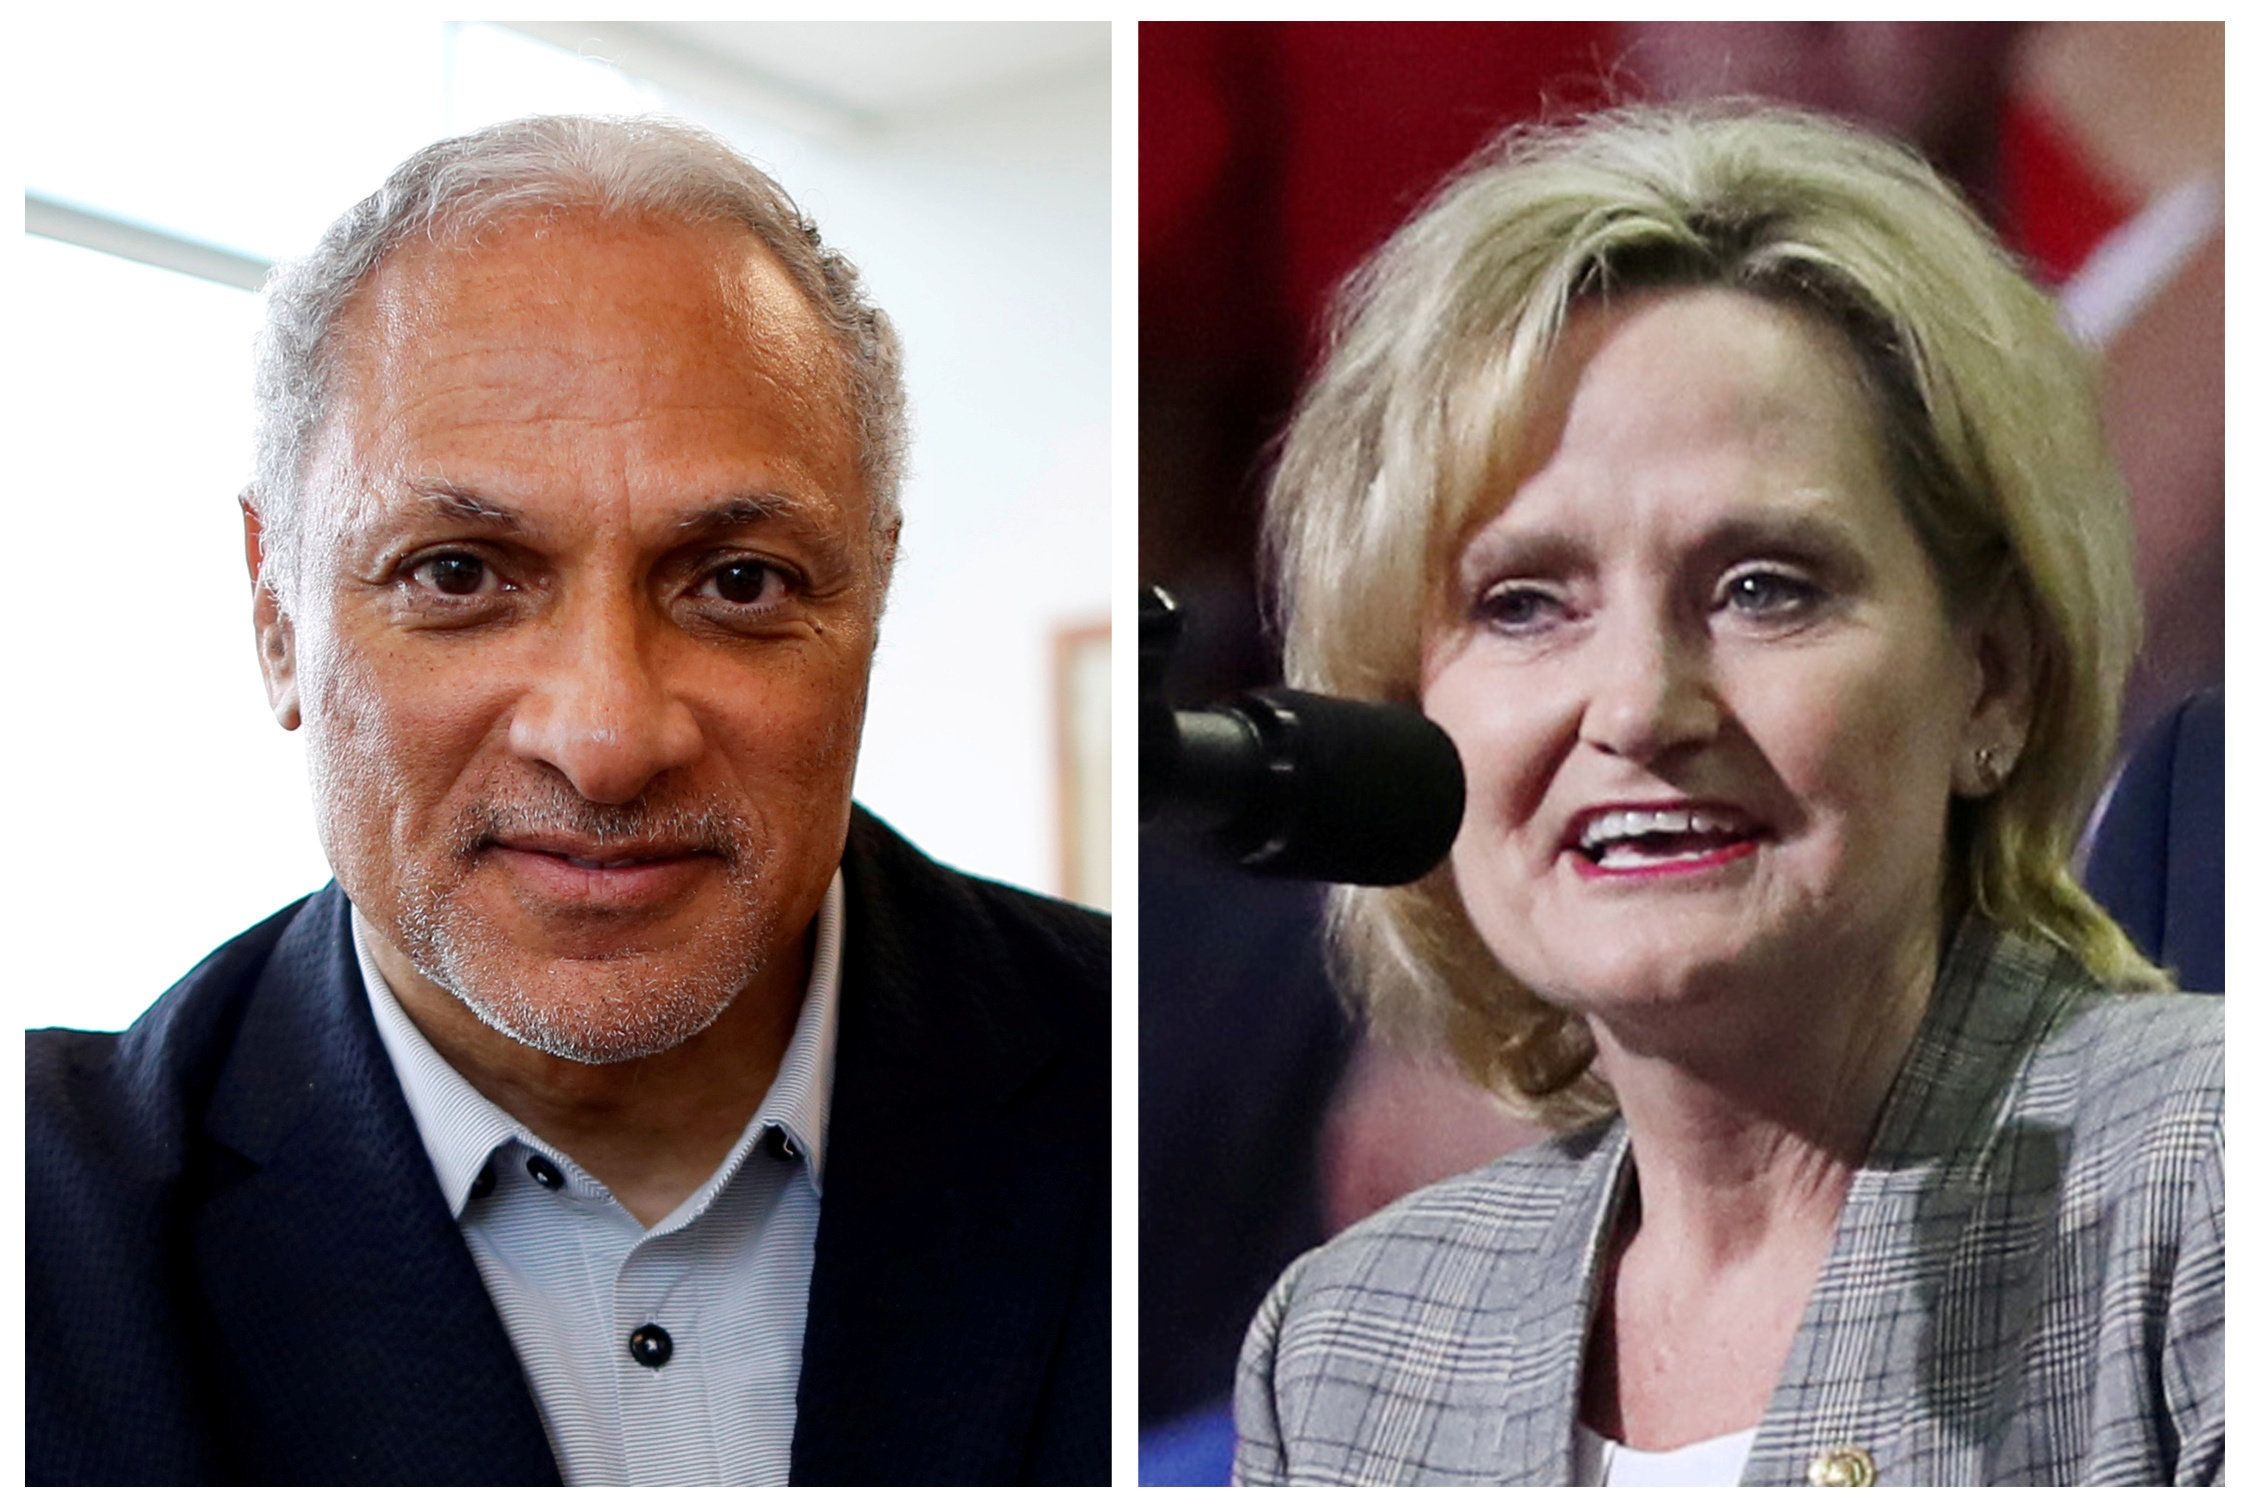 FILE PHOTOS: U.S. Senate candidate Mike Espy and U.S. Senator Cindy Hyde-Smith (R) are seen in combination file photos, in Jackson, Mississippi, U.S. on May 8, 2018 and in Southaven, Mississippi, U.S. on October 2, 2018 respectively.   REUTERS/Jonathan Bachman (L) and REUTERS/Jonathan Ernst/File Photos